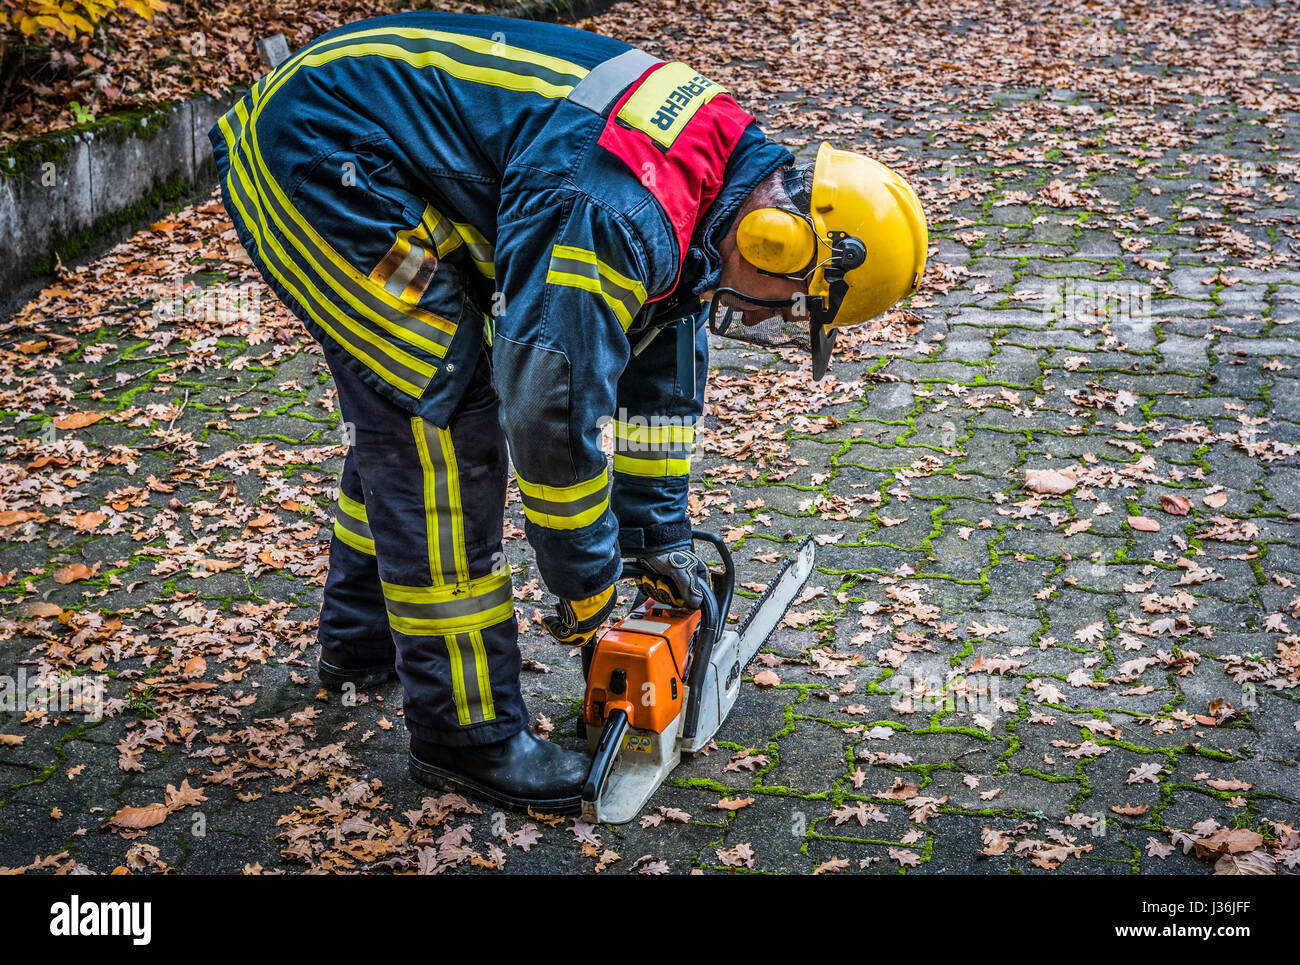 Firefighter in action with a chain saw - HDR - Stock Image